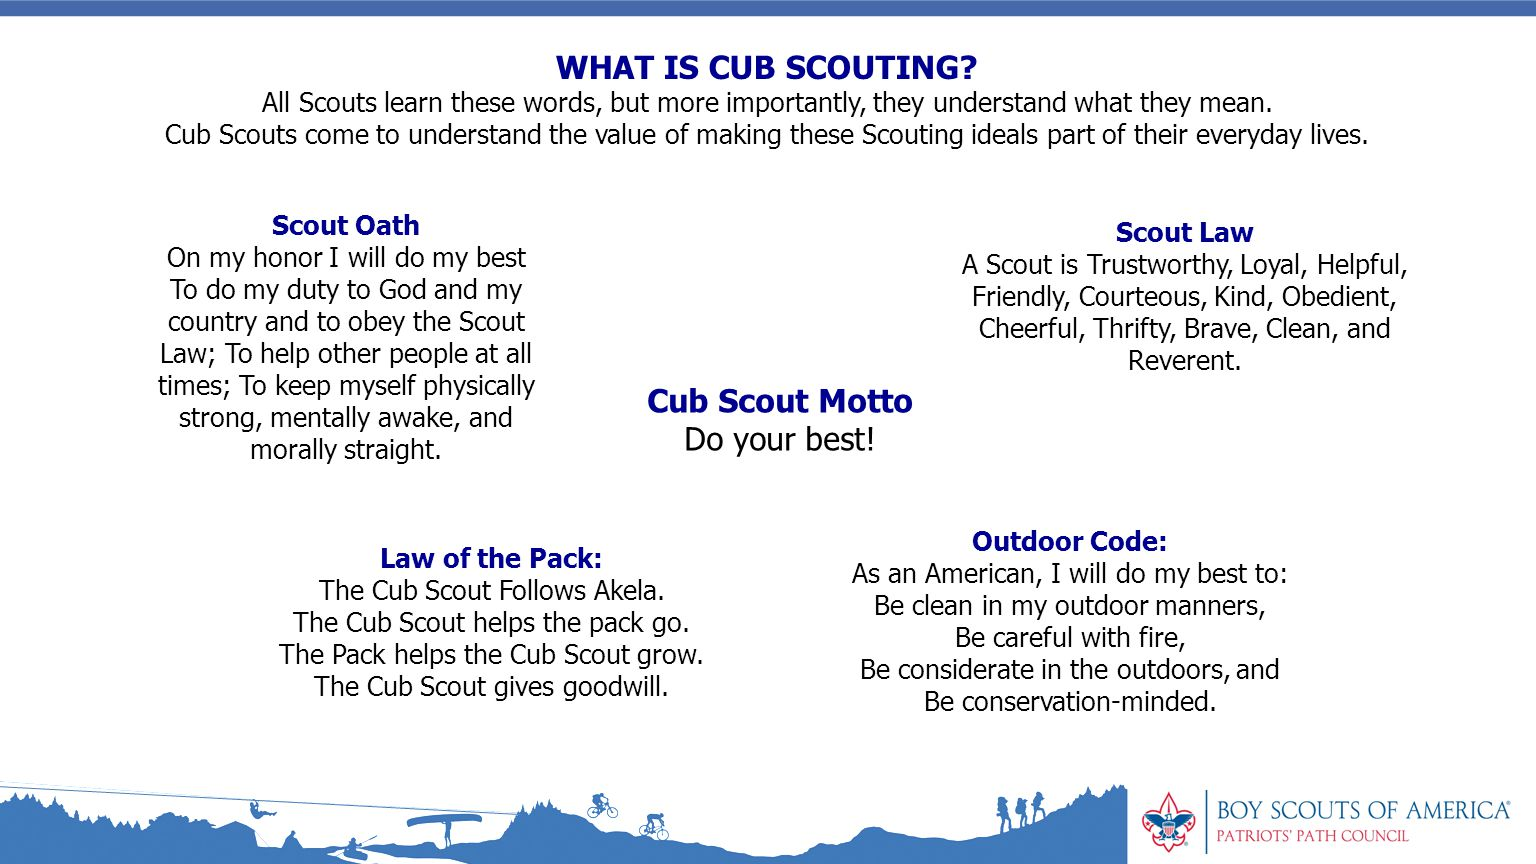 graphic regarding Cub Scout Oath and Law Printable named outside code bsa -